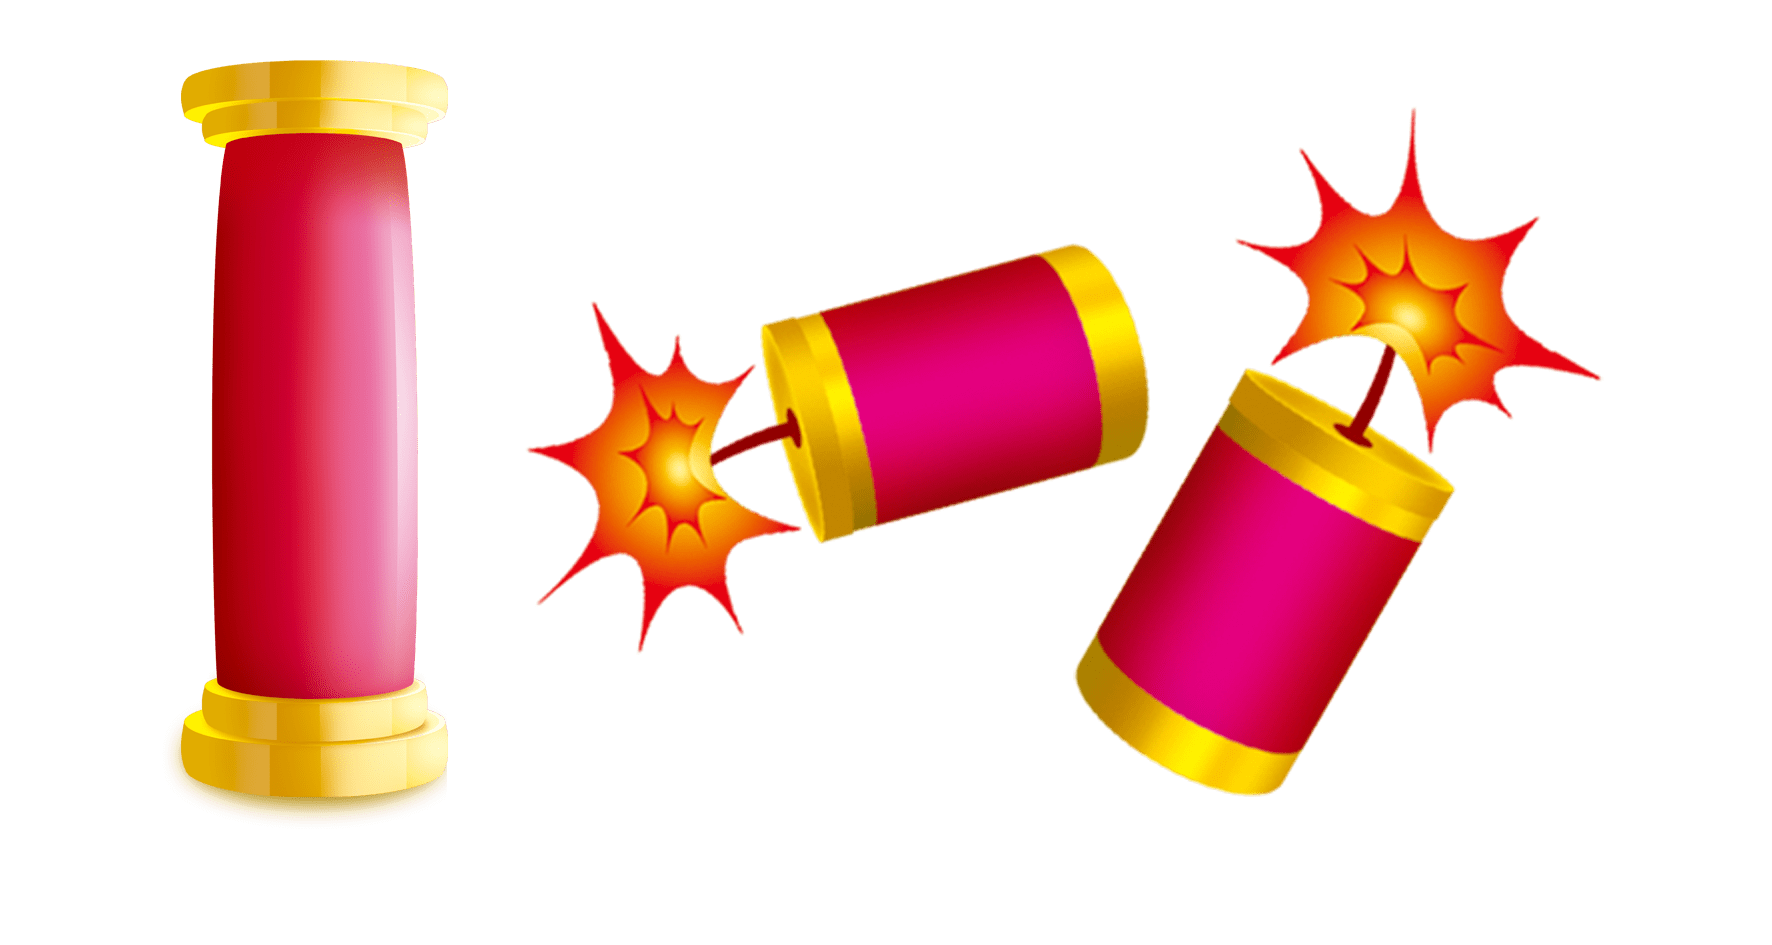 Diwali Crackers Png Firecracker Png Images Transparent Free Download Pngmart